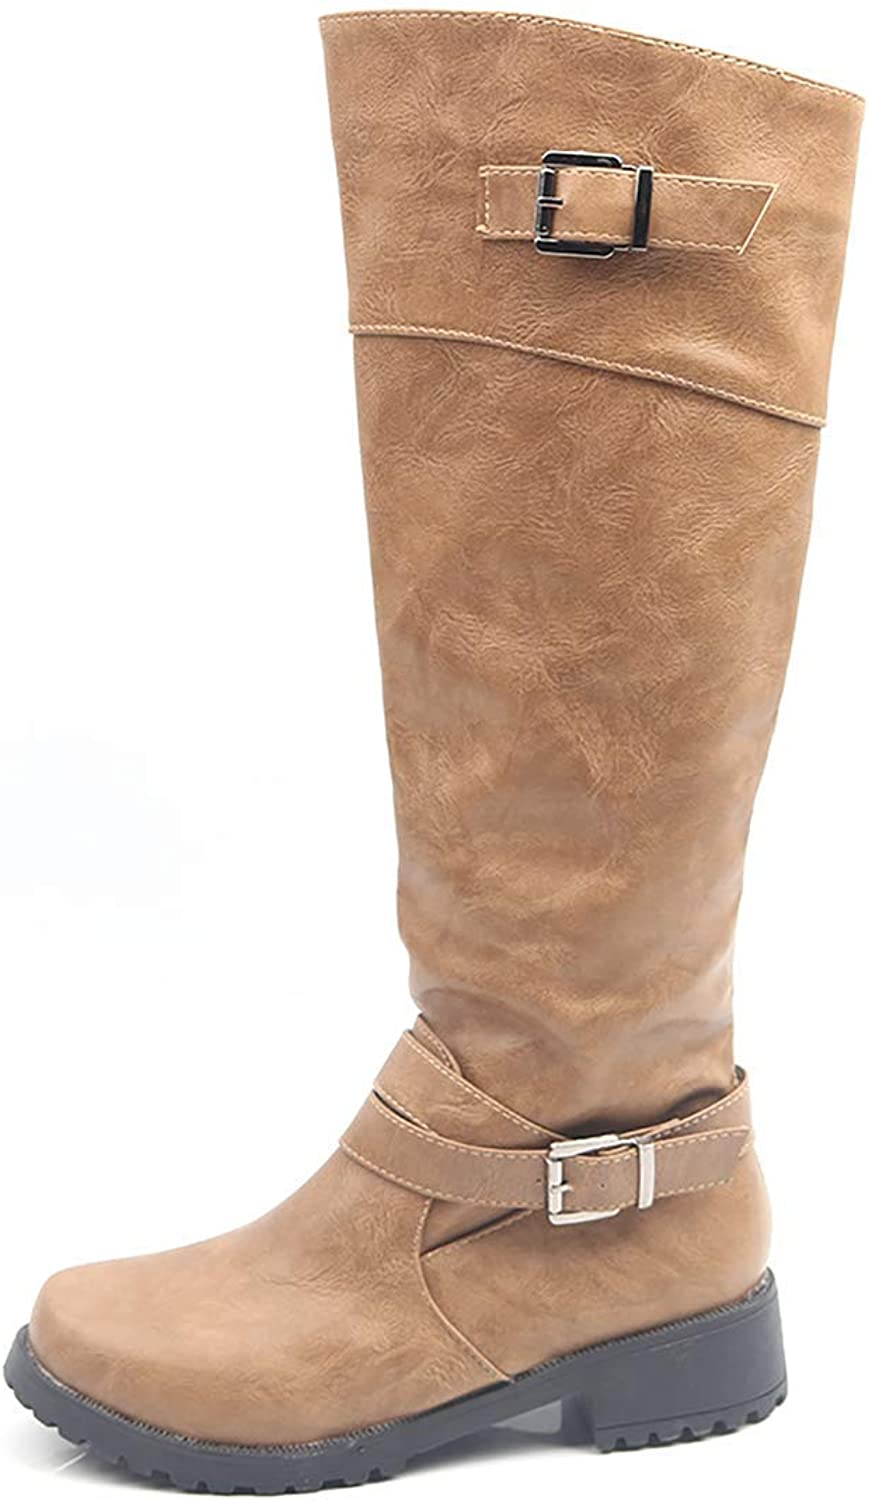 Womens Knee High Ridng Boots Wide Calf Leather Zip Work Booties Chunky Low Heels Strappy Hiking shoes(-)